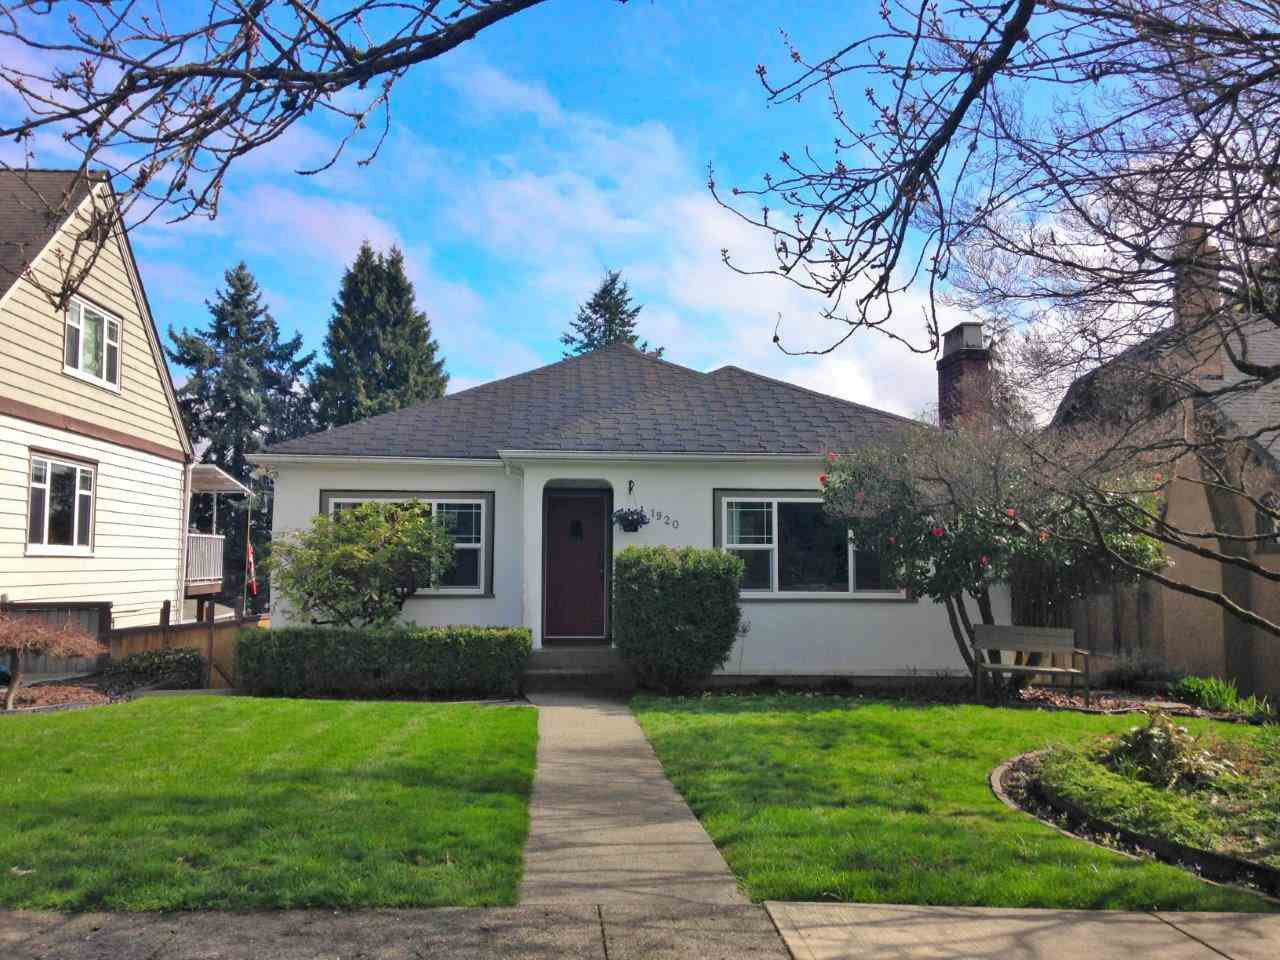 Main Photo: 1920 DUBLIN Street in New Westminster: West End NW House for sale : MLS®# R2254922